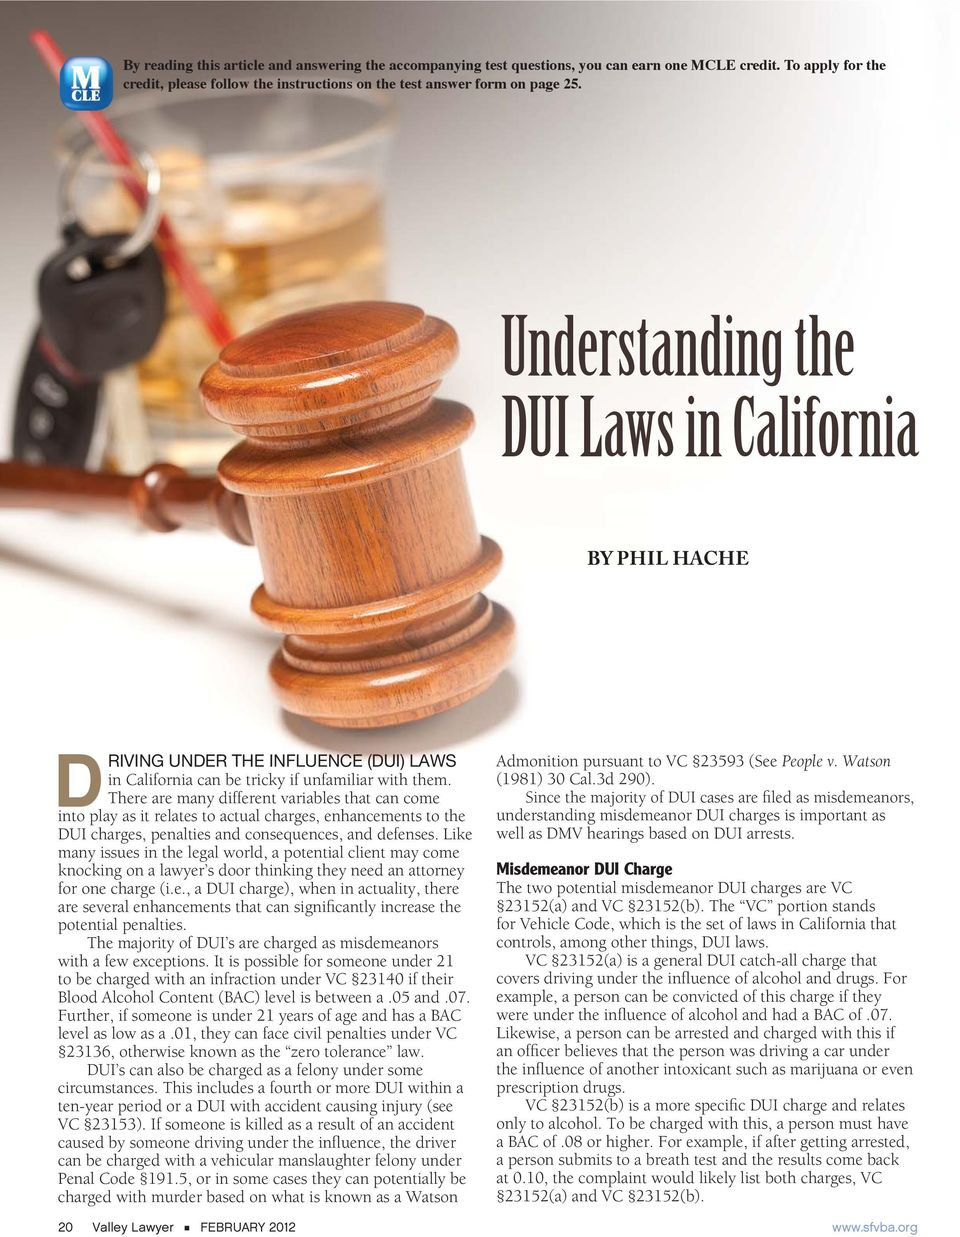 There are many different variables that can come into play as it relates to actual charges, enhancements to the DUI charges, penalties and consequences, and defenses.